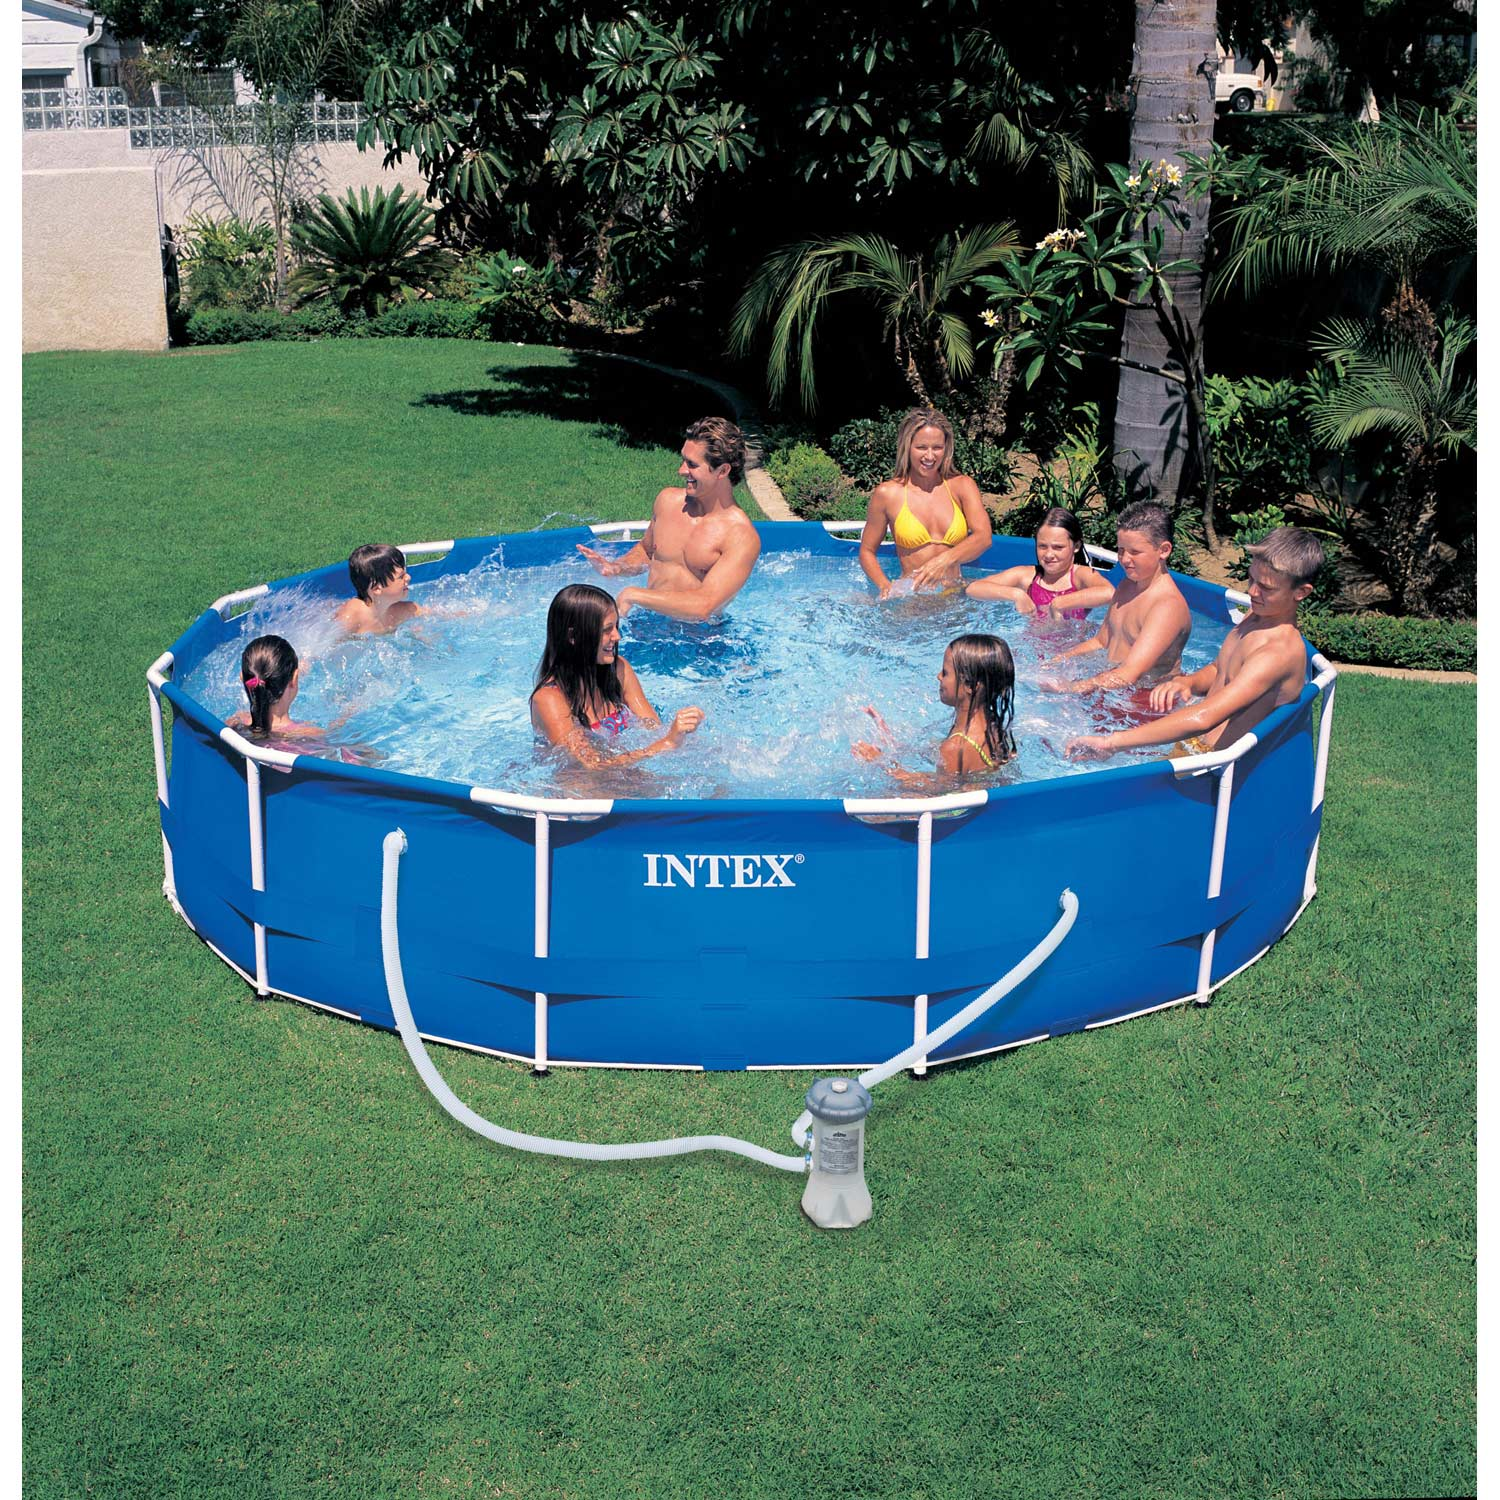 Piscine hors sol autoportante tubulaire metal frame intex for Echelle piscine tubulaire